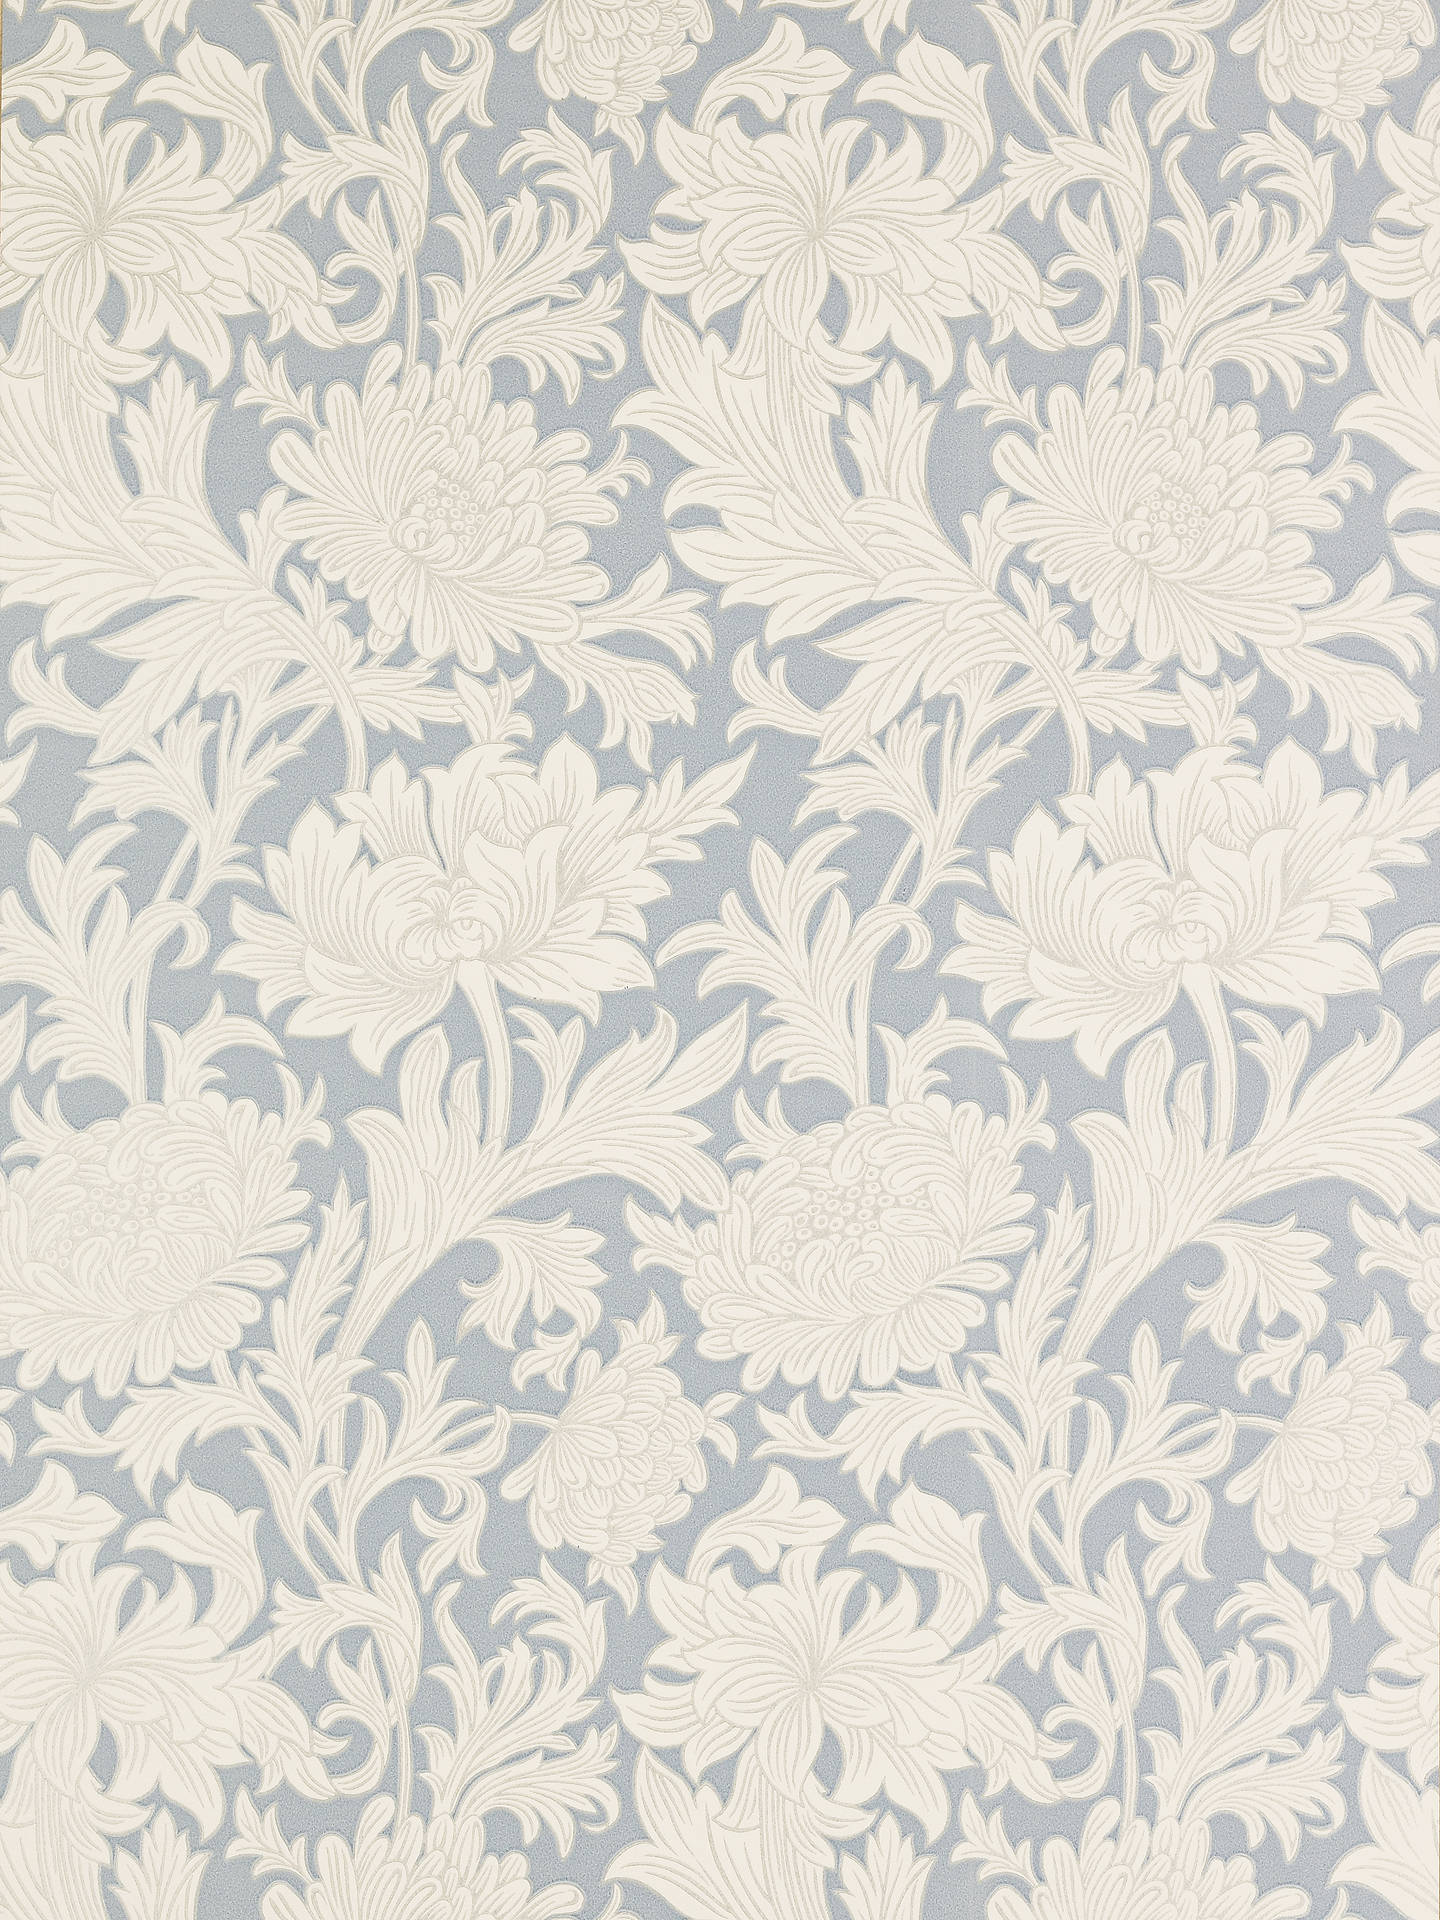 BuyMorris & Co. Chrysanthemum Toile, China Blue / Cream, DMOWCH101 Online at johnlewis.com